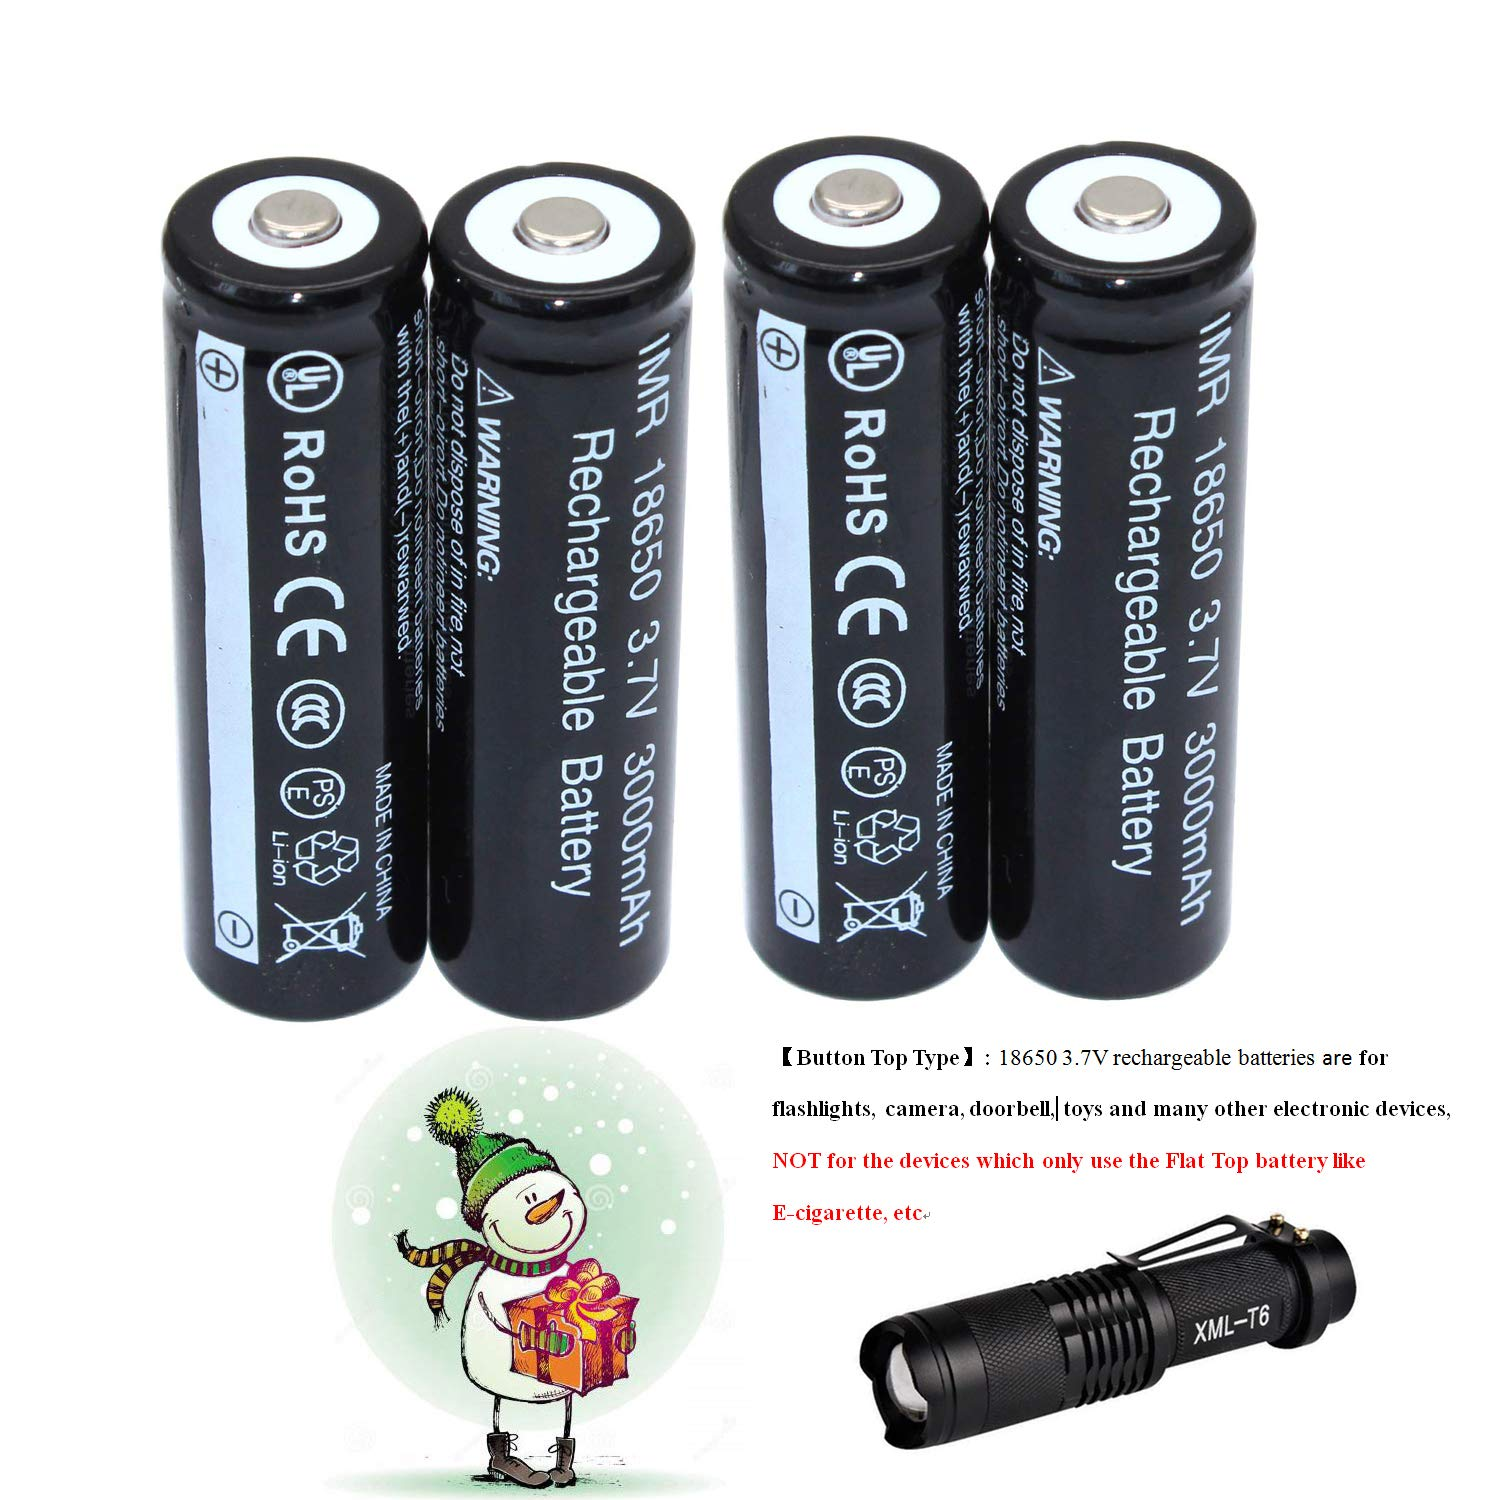 2 Pieces Batteries for Powerful LED Head Torches Headlamps Flashlights Universal UK Standard BS1363 Plug High Power 3.7V 18650 Batteries with Charger Kit Not for E-cigs